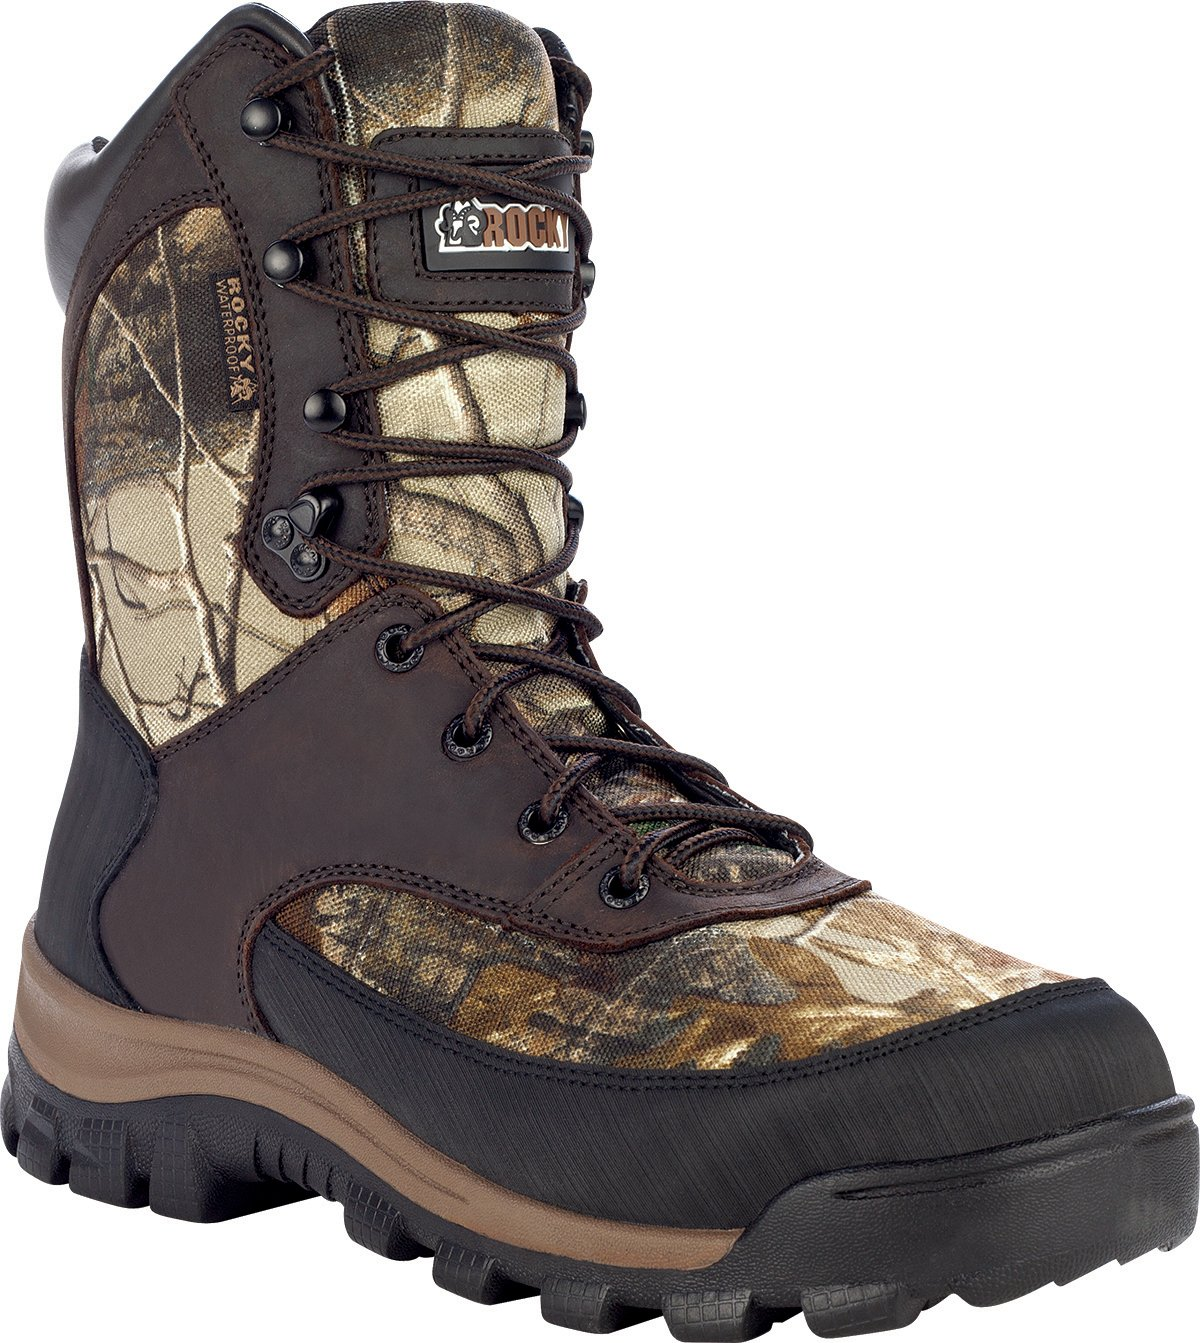 Rocky Men's 4754 400g Insulated Boot,Real Tree AP,9.5 W US by Rocky